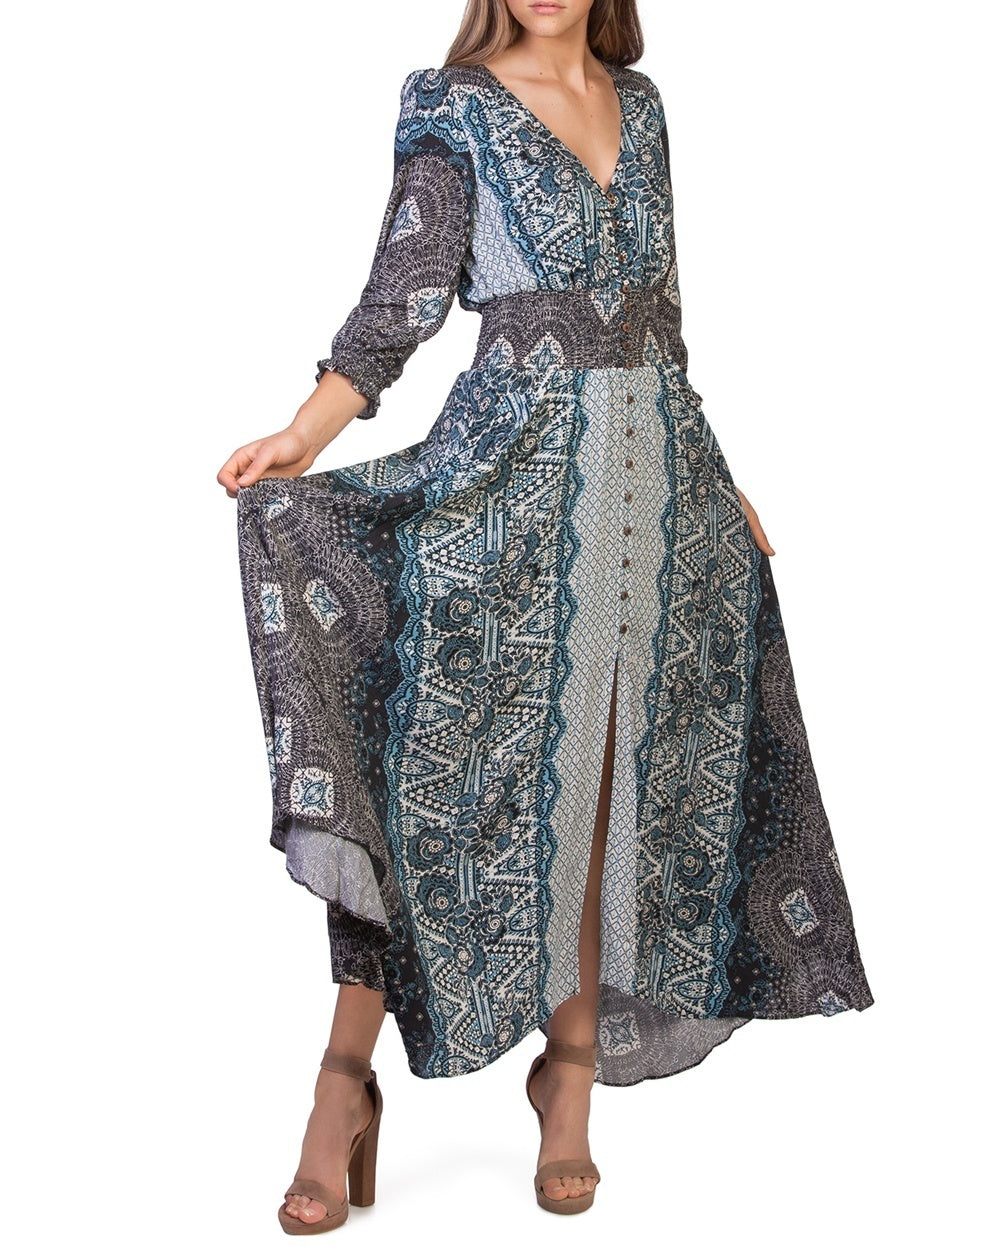 5bc84b7578d Free People Mexicali Rose Maxi Dress - The Shopping Bag